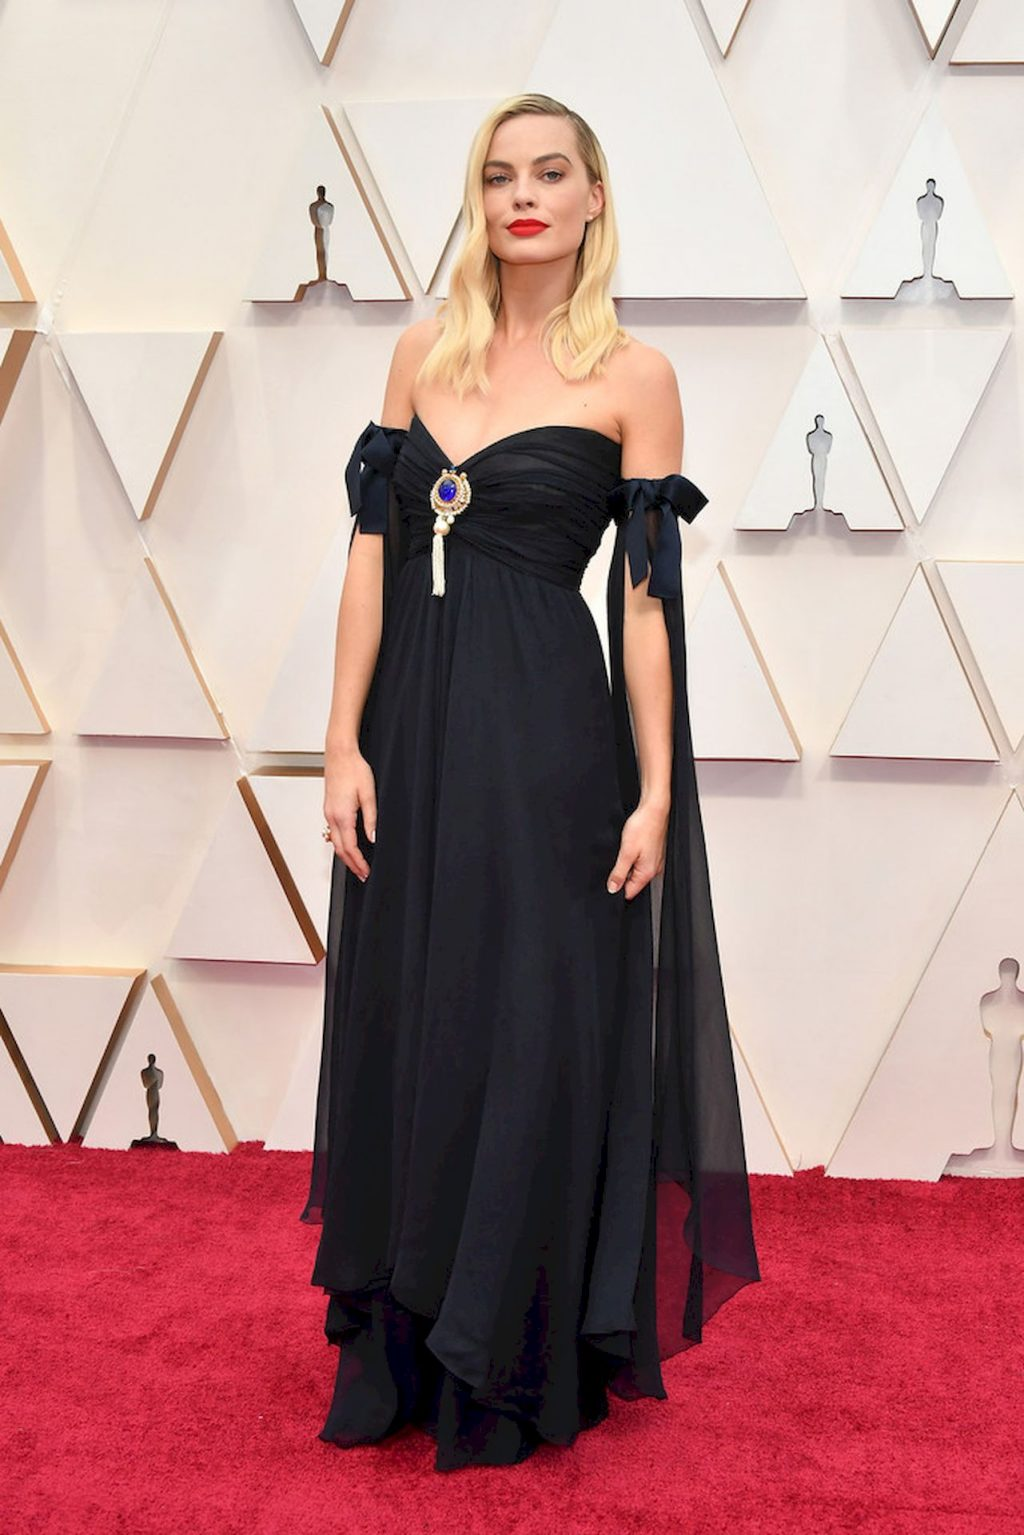 Margot Robbie Looks Beautiful on the Red Carpet of the 92nd Academy Awards (12 Photos)